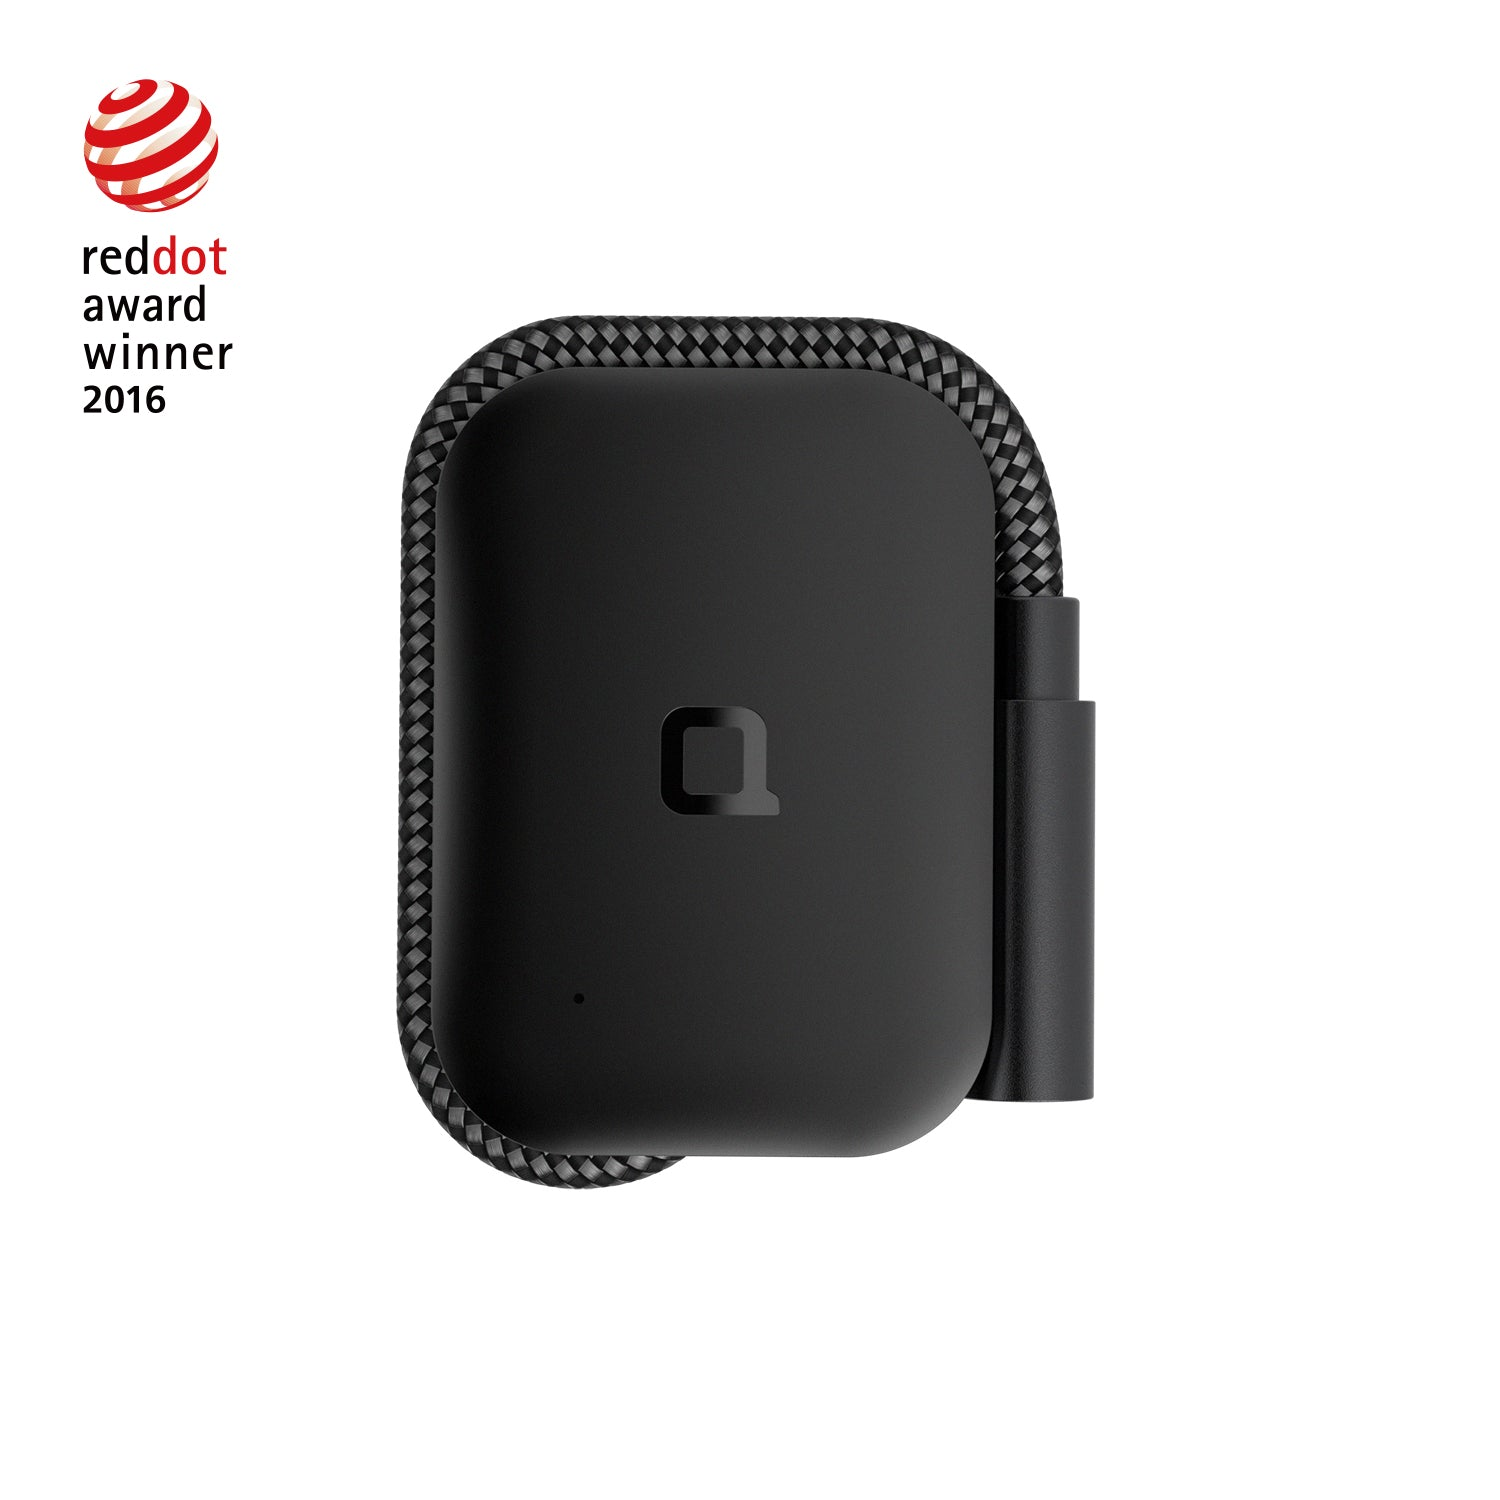 Foldable HDMI MiniDP Adapter (Foldable MiniDP Adapter)<meta charset= utf-8 ><meta name= product-description  content= .product-description ><meta name= short-title  content=  ><div class= hide product-description >- Connect USB-C Device to Your Monitor <br>- Supports 4K Video <br>- Easily Fits in the Extra Space of A Laptop Sleeve</div><div id= feature_group_list ><div class= feature-group feature-group-attribute feature-group-jumbotron feature-group-inverse  data-attribute='{ type : content_media_banner , icon :  , media : https://cdn.shopify.com/s/files/1/0703/1149/files/1571542166526_.pic.jpg?16216920822654278242 , title : USB-C Foldable Adapter , description : Connect your USB-C device to your TV, projector, or monitor with this easy-to-use, portable adapter. Available in both HDMI and MiniDP connections. , video_link : }'><div class= row  id= banner ><div class= col-xs-12 feature-media-box ><div class= feature-media b-lazy ><div class= feature-content-box ><div class= feature-content row ><div class= typo typo-heavy col-md-6 ><h2 class= banner-lowercase >USB-C Foldable Adapter</h2><hr><p>Connect your USB-C device to your TV, projector, or monitor with this easy-to-use, portable adapter. Available in both HDMI and MiniDP connections.</p></div></div></div></div></div></div></div><div class= feature-group feature-group-attribute   data-attribute='{ type : media_content , icon : 4k , media : https://cdn.shopify.com/s/files/1/0703/1149/files/dongle_4k.jpg?288397287556982646 , title : Supports 4K Video , description : Supports Ultra HD video resolutions up to 4096×2160 @60Hz. Enjoy crisp and flicker-free video image with no lag. , video_link : }'><div class= row ><div class= col-xs-12 col-md-6 col-md-push-6 feature-content-box ><div class= feature-content ><div class= typo typo-heavy ><h2>Supports 4K Video</h2><hr><p>Supports Ultra HD video resolutions up to 4096×2160 @60Hz. Enjoy crisp and flicker-free video image with no lag.</p></div></div></div><div class= col-xs-12 col-md-6 col-md-pull-6 feature-media-box ></div></div></div><div class= feature-group feature-group-attribute   data-attribute='{ type : content_media , icon :  , media : https://cdn.shopify.com/s/files/1/0703/1149/files/Perfect_Workspace.png?288397287556982646 , title : Perfect for the Flexible Workspace , description : Everything is getting smaller, more portable and more flexible. As a result, we've designed the USB-C Foldable Adapter to support a flexible work style with its compact size and lightweight design. , video_link : }'><div class= row ><div class= col-xs-12 col-md-6 feature-content-box ><div class= feature-content ><div class= typo typo-heavy ><h2>Perfect for the Flexible Workspace</h2><hr><p>Everything is getting smaller, more portable and more flexible. As a result, we've designed the USB-C Foldable Adapter to support a flexible work style with its compact size and lightweight design.</p></div></div></div><div class= col-xs-12 col-md-6 feature-media-box ></div></div></div><div class= feature-group feature-group-attribute   data-attribute='{ type : media_content , icon : sleek-design , media : https://cdn.shopify.com/s/files/1/0703/1149/files/Functional_Design.png?288397287556982646 , title : Functional Design , description : Easily unfold the adapter by grabbing the head of the USB-C plug. The wrapped cable protects the adapter's HDMI or mDP port from dust and dirt. A guideway around the adapter with a generous radius holds the cable snug and tight while maintaining its bendability. , video_link : }'><div class= row ><div class= col-xs-12 col-md-6 col-md-push-6 feature-content-box ><div class= feature-content ><div class= typo typo-heavy ><h2>Functional Design</h2><hr><p>Easily unfold the adapter by grabbing the head of the USB-C plug. The wrapped cable protects the adapter's HDMI or mDP port from dust and dirt. A guideway around the adapter with a generous radius holds the cable snug and tight while maintaining its bendability.</p></div></div></div><div class= col-xs-12 col-md-6 col-md-pull-6 feature-media-box ></div></div></div><div class= feature-group feature-group-attribute   data-attribute='{ type : content_media , icon : compactfoldable , media : https://cdn.shopify.com/s/files/1/0703/1149/files/World_s_First.jpg?288397287556982646 , title : World's First Foldable Adapter , description : Easily fits in the extra space of a laptop sleeve without dangling and tangling. Comes with a foldable cable that is around 4 inches when unfurled - perfect for travelling. , video_link : }'><div class= row ><div class= col-xs-12 col-md-6 feature-content-box ><div class= feature-content ><div class= typo typo-heavy ><h2>World's First Foldable Adapter</h2><hr><p>Easily fits in the extra space of a laptop sleeve without dangling and tangling. Comes with a foldable cable that is around 4 inches when unfurled - perfect for travelling.</p></div></div></div><div class= col-xs-12 col-md-6 feature-media-box ></div></div></div><div class= feature-group feature-group-attribute   data-attribute='{ type : media_content , icon :  , media : https://cdn.shopify.com/s/files/1/0703/1149/files/indicator_light.jpg?288397287556982646 , title : Smart Indicator Light , description : The LED shines a subtle and continuous white light when you plug the adapter into a USB-C port, indicating that the adapter is ready to use. , video_link : }'><div class= row ><div class= col-xs-12 col-md-6 col-md-push-6 feature-content-box ><div class= feature-content ><div class= typo typo-heavy ><h2>Smart Indicator Light</h2><hr><p>The LED shines a subtle and continuous white light when you plug the adapter into a USB-C port, indicating that the adapter is ready to use.</p></div></div></div><div class= col-xs-12 col-md-6 col-md-pull-6 feature-media-box ></div></div></div><div class= feature-group feature-group-attribute   data-attribute='{ type : content_media , icon :  , media : https://cdn.shopify.com/s/files/1/0703/1149/files/superb.png?288397287556982646 , title : Superb Durability , description : The adapter's double-braided nylon cable protects against spills. Low Temperature Injection Molding technology prevents the adapter from running hot under use and extends product life span. , video_link : }'><div class= row ><div class= col-xs-12 col-md-6 feature-content-box ><div class= feature-content ><div class= typo typo-heavy ><h2>Superb Durability</h2><hr><p>The adapter's double-braided nylon cable protects against spills. Low Temperature Injection Molding technology prevents the adapter from running hot under use and extends product life span.</p></div></div></div><div class= col-xs-12 col-md-6 feature-media-box ></div></div></div><div class= feature-group feature-group-attribute feature-group-inverse  data-attribute='{ type : dongle_tech_spec }'>dongle_tech_spec</div><div class= feature-group feature-group-attribute feature-group-inverse  data-attribute='{ type : about_nonda }'>about_nonda</div><div class= feature-group feature-group-attribute feature-group-inverse  data-attribute='{ type : nonda_awards }'>nonda_awards</div></div>